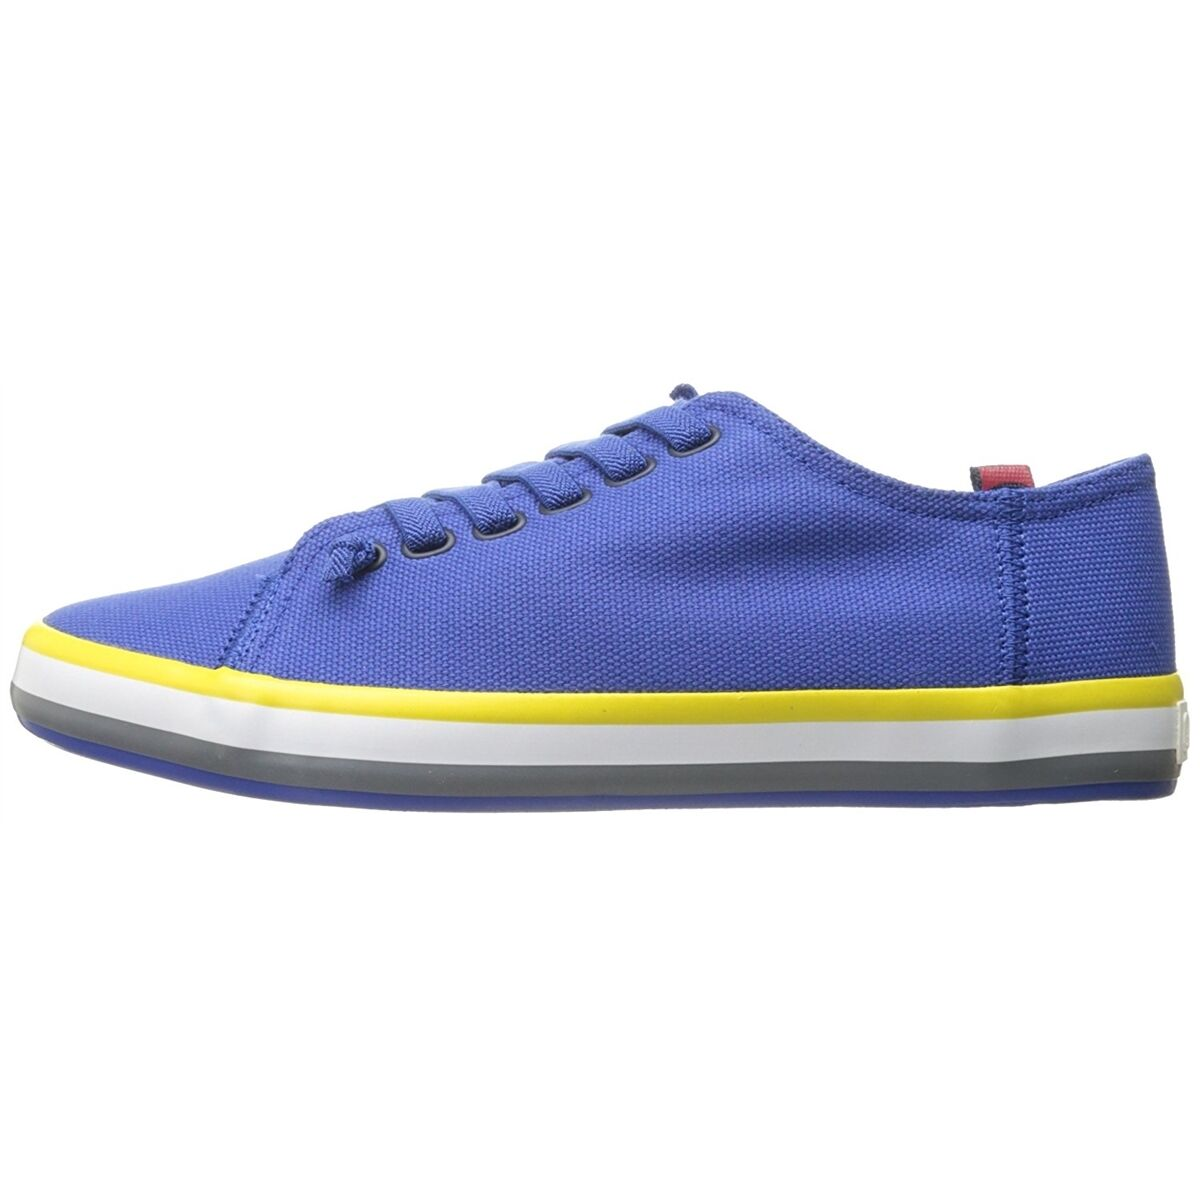 Scarpe casual da uomo  Camper Camper Shoes uomos Camper  Andratx Blue Canvas Sneakers Trainer Shoes NEW f47e4c